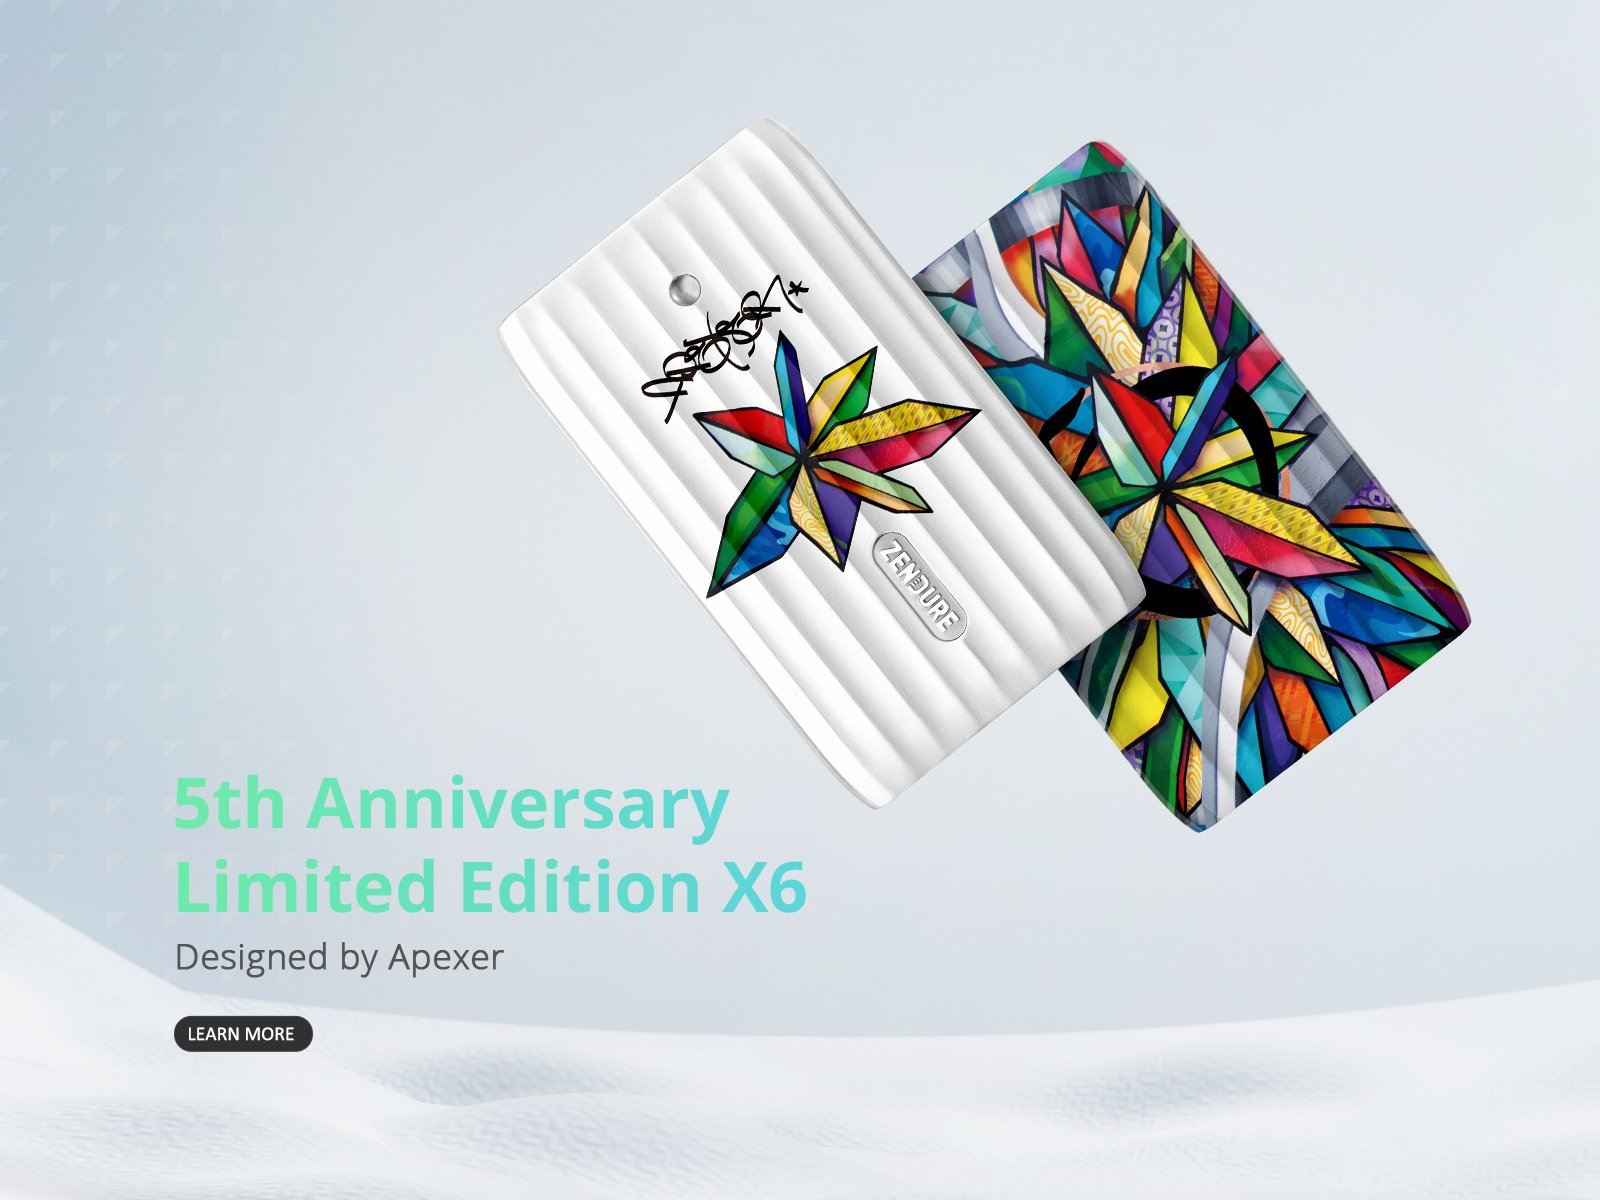 Limited Edition X6 Portable Charger